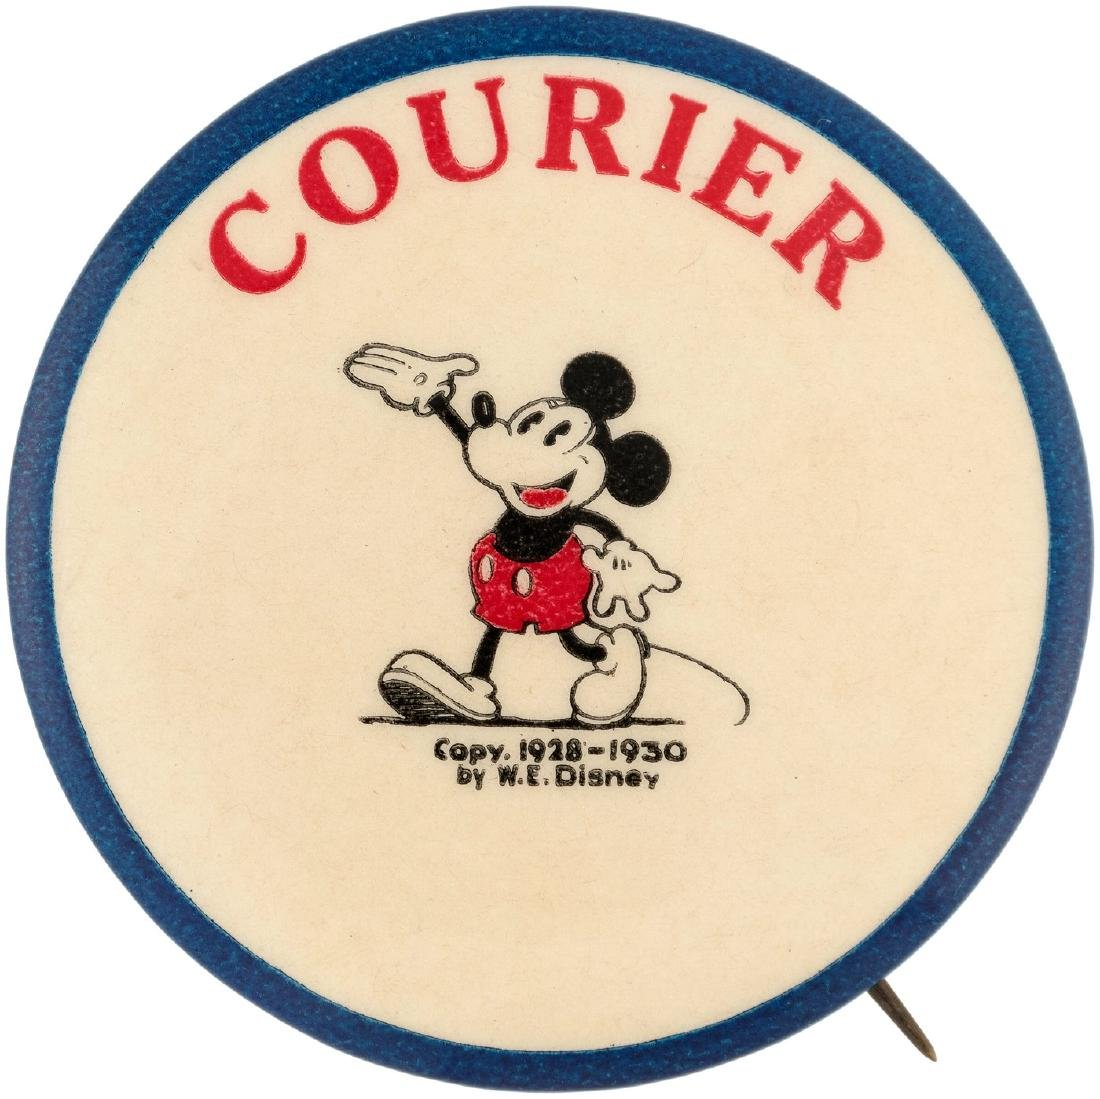 """MICKEY MOUSE """"COURIER"""" MOVIE THEATER CLUB BUTTON"""